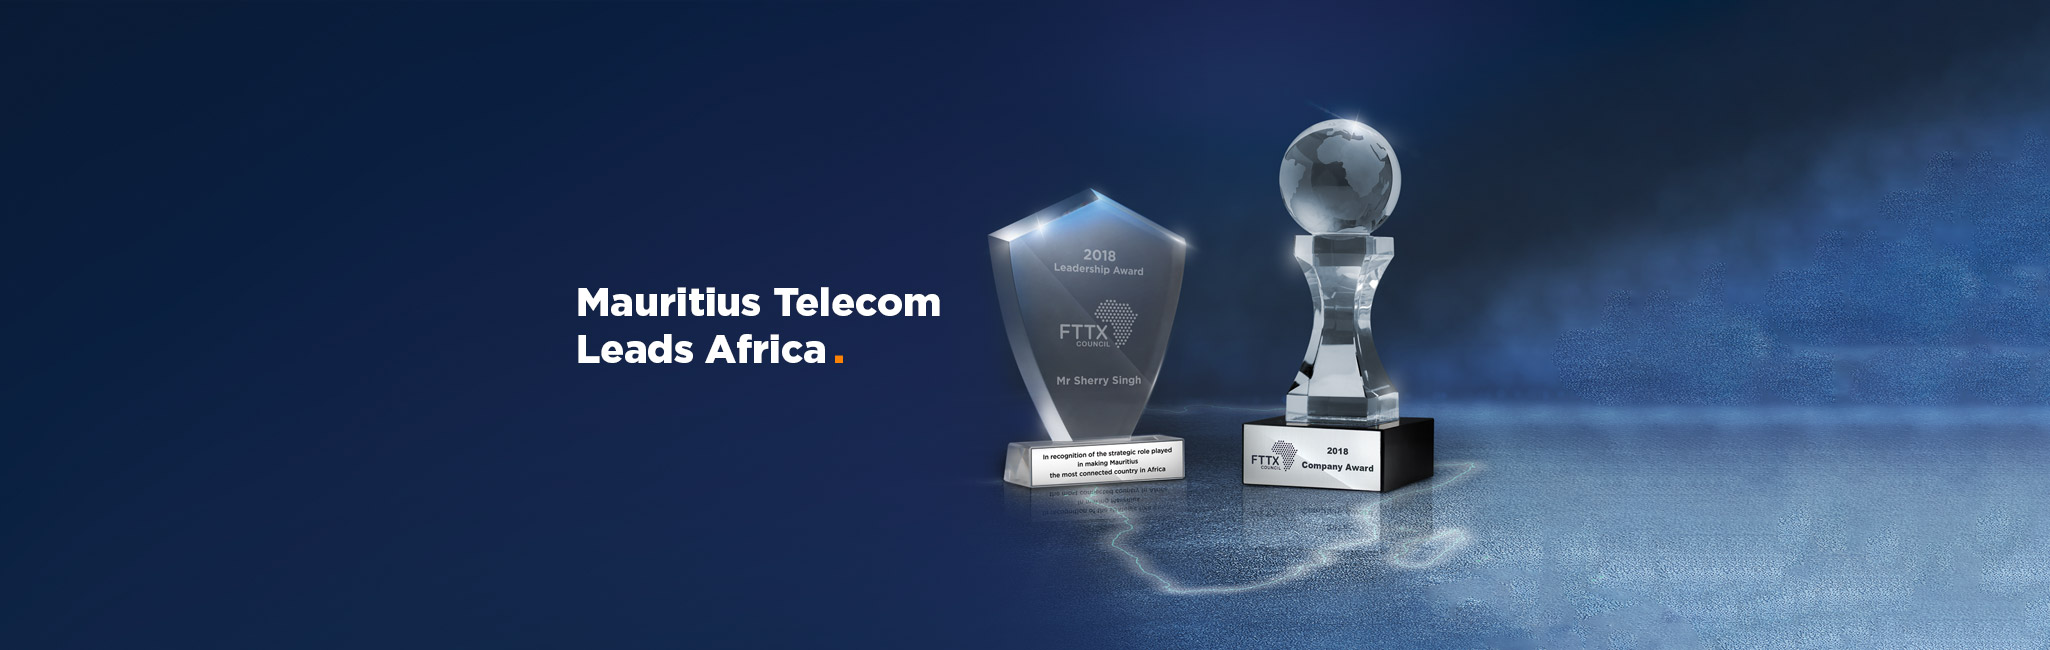 FTTX Council Africa 2018 – Mauritius Telecom grand lauréat